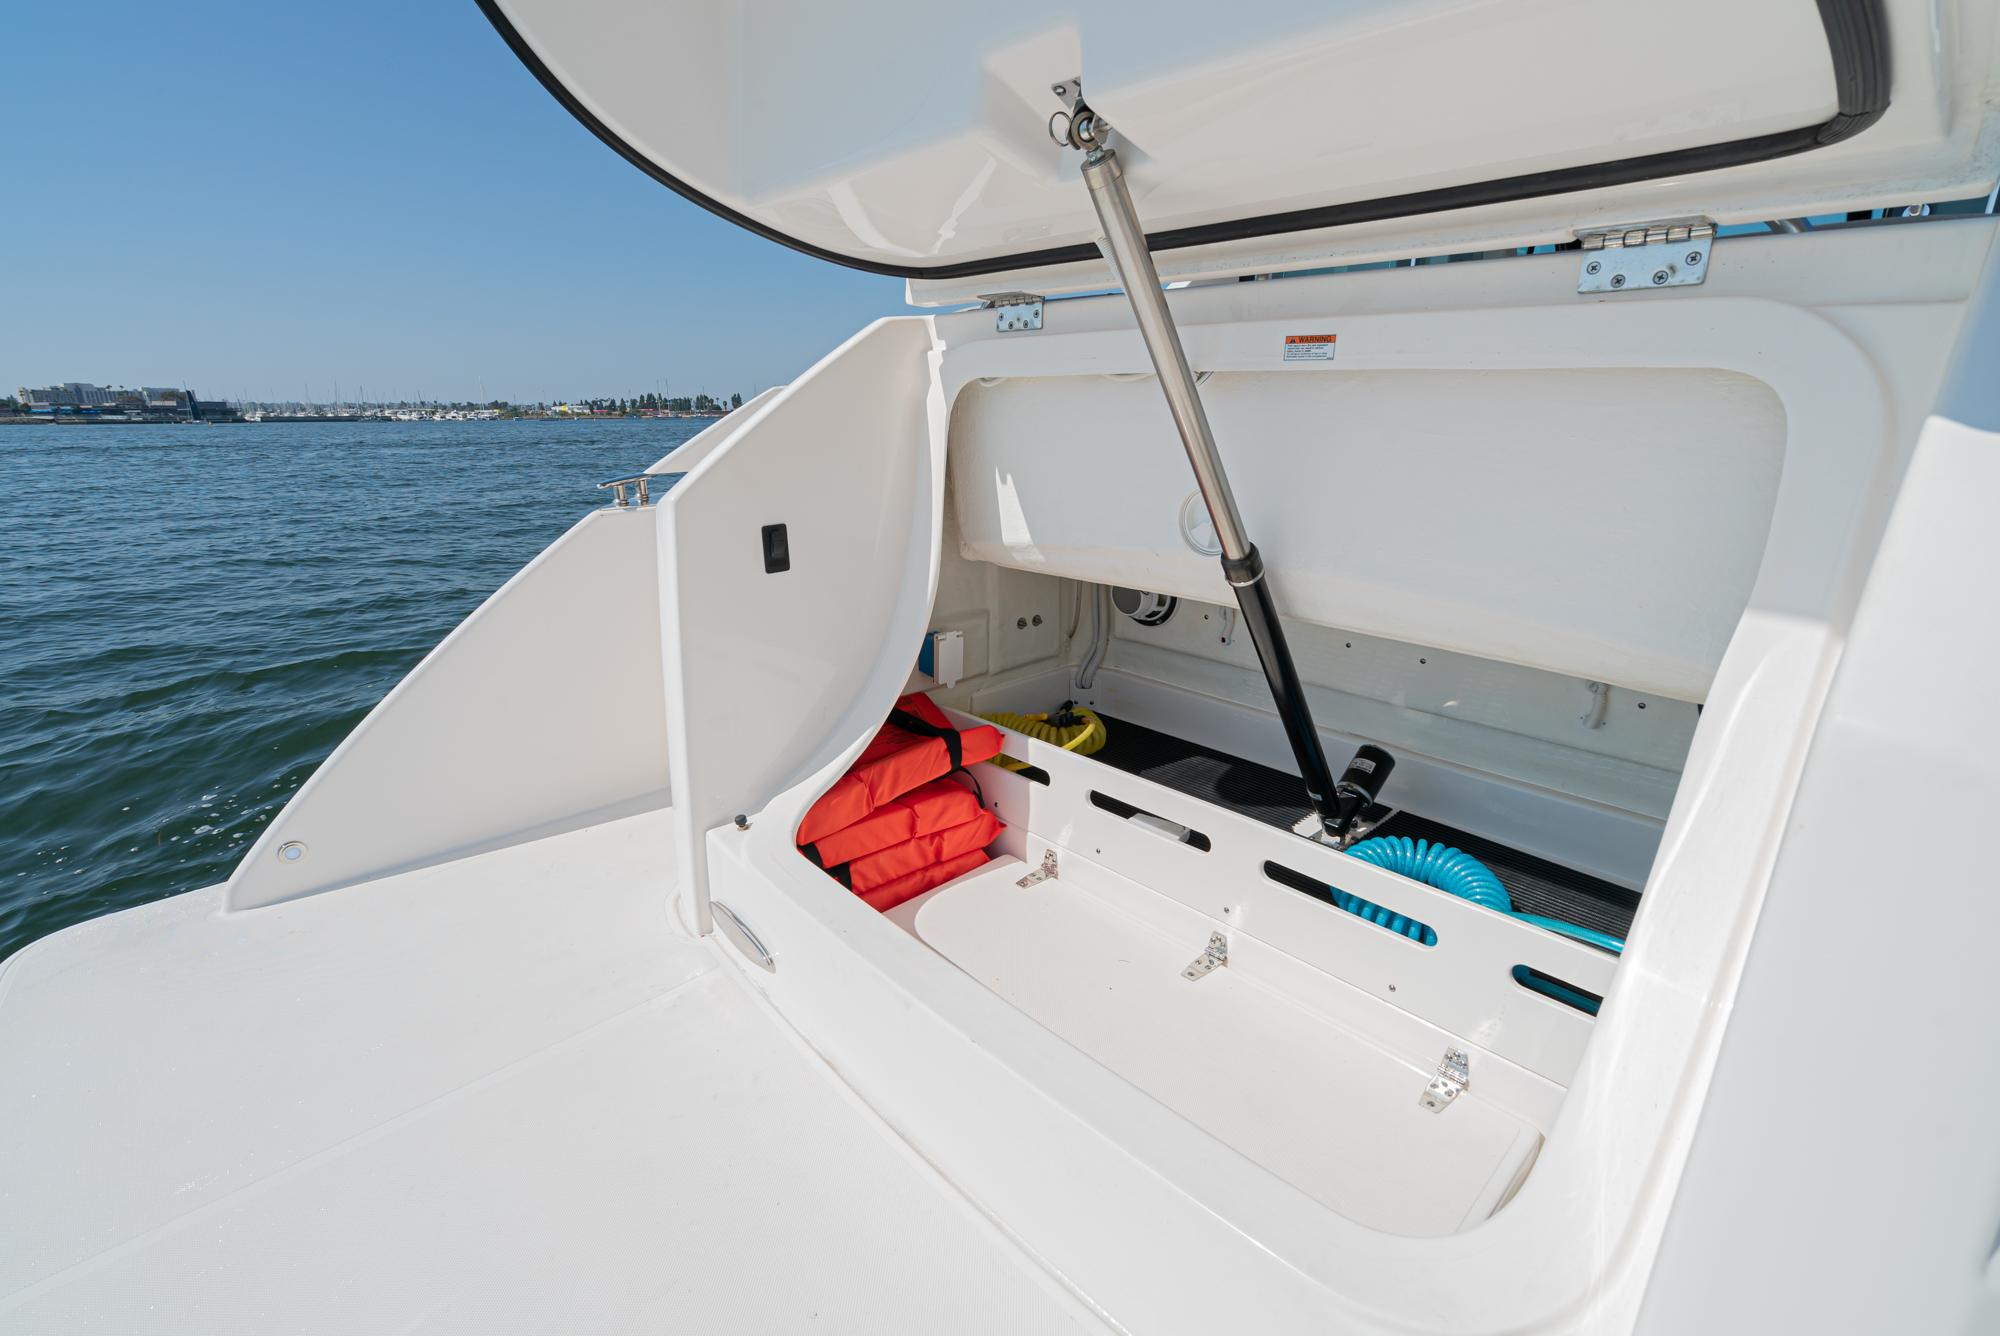 2017 Tiara Yachts 39 Coupe #TB023RM inventory image at Sun Country Coastal in San Diego